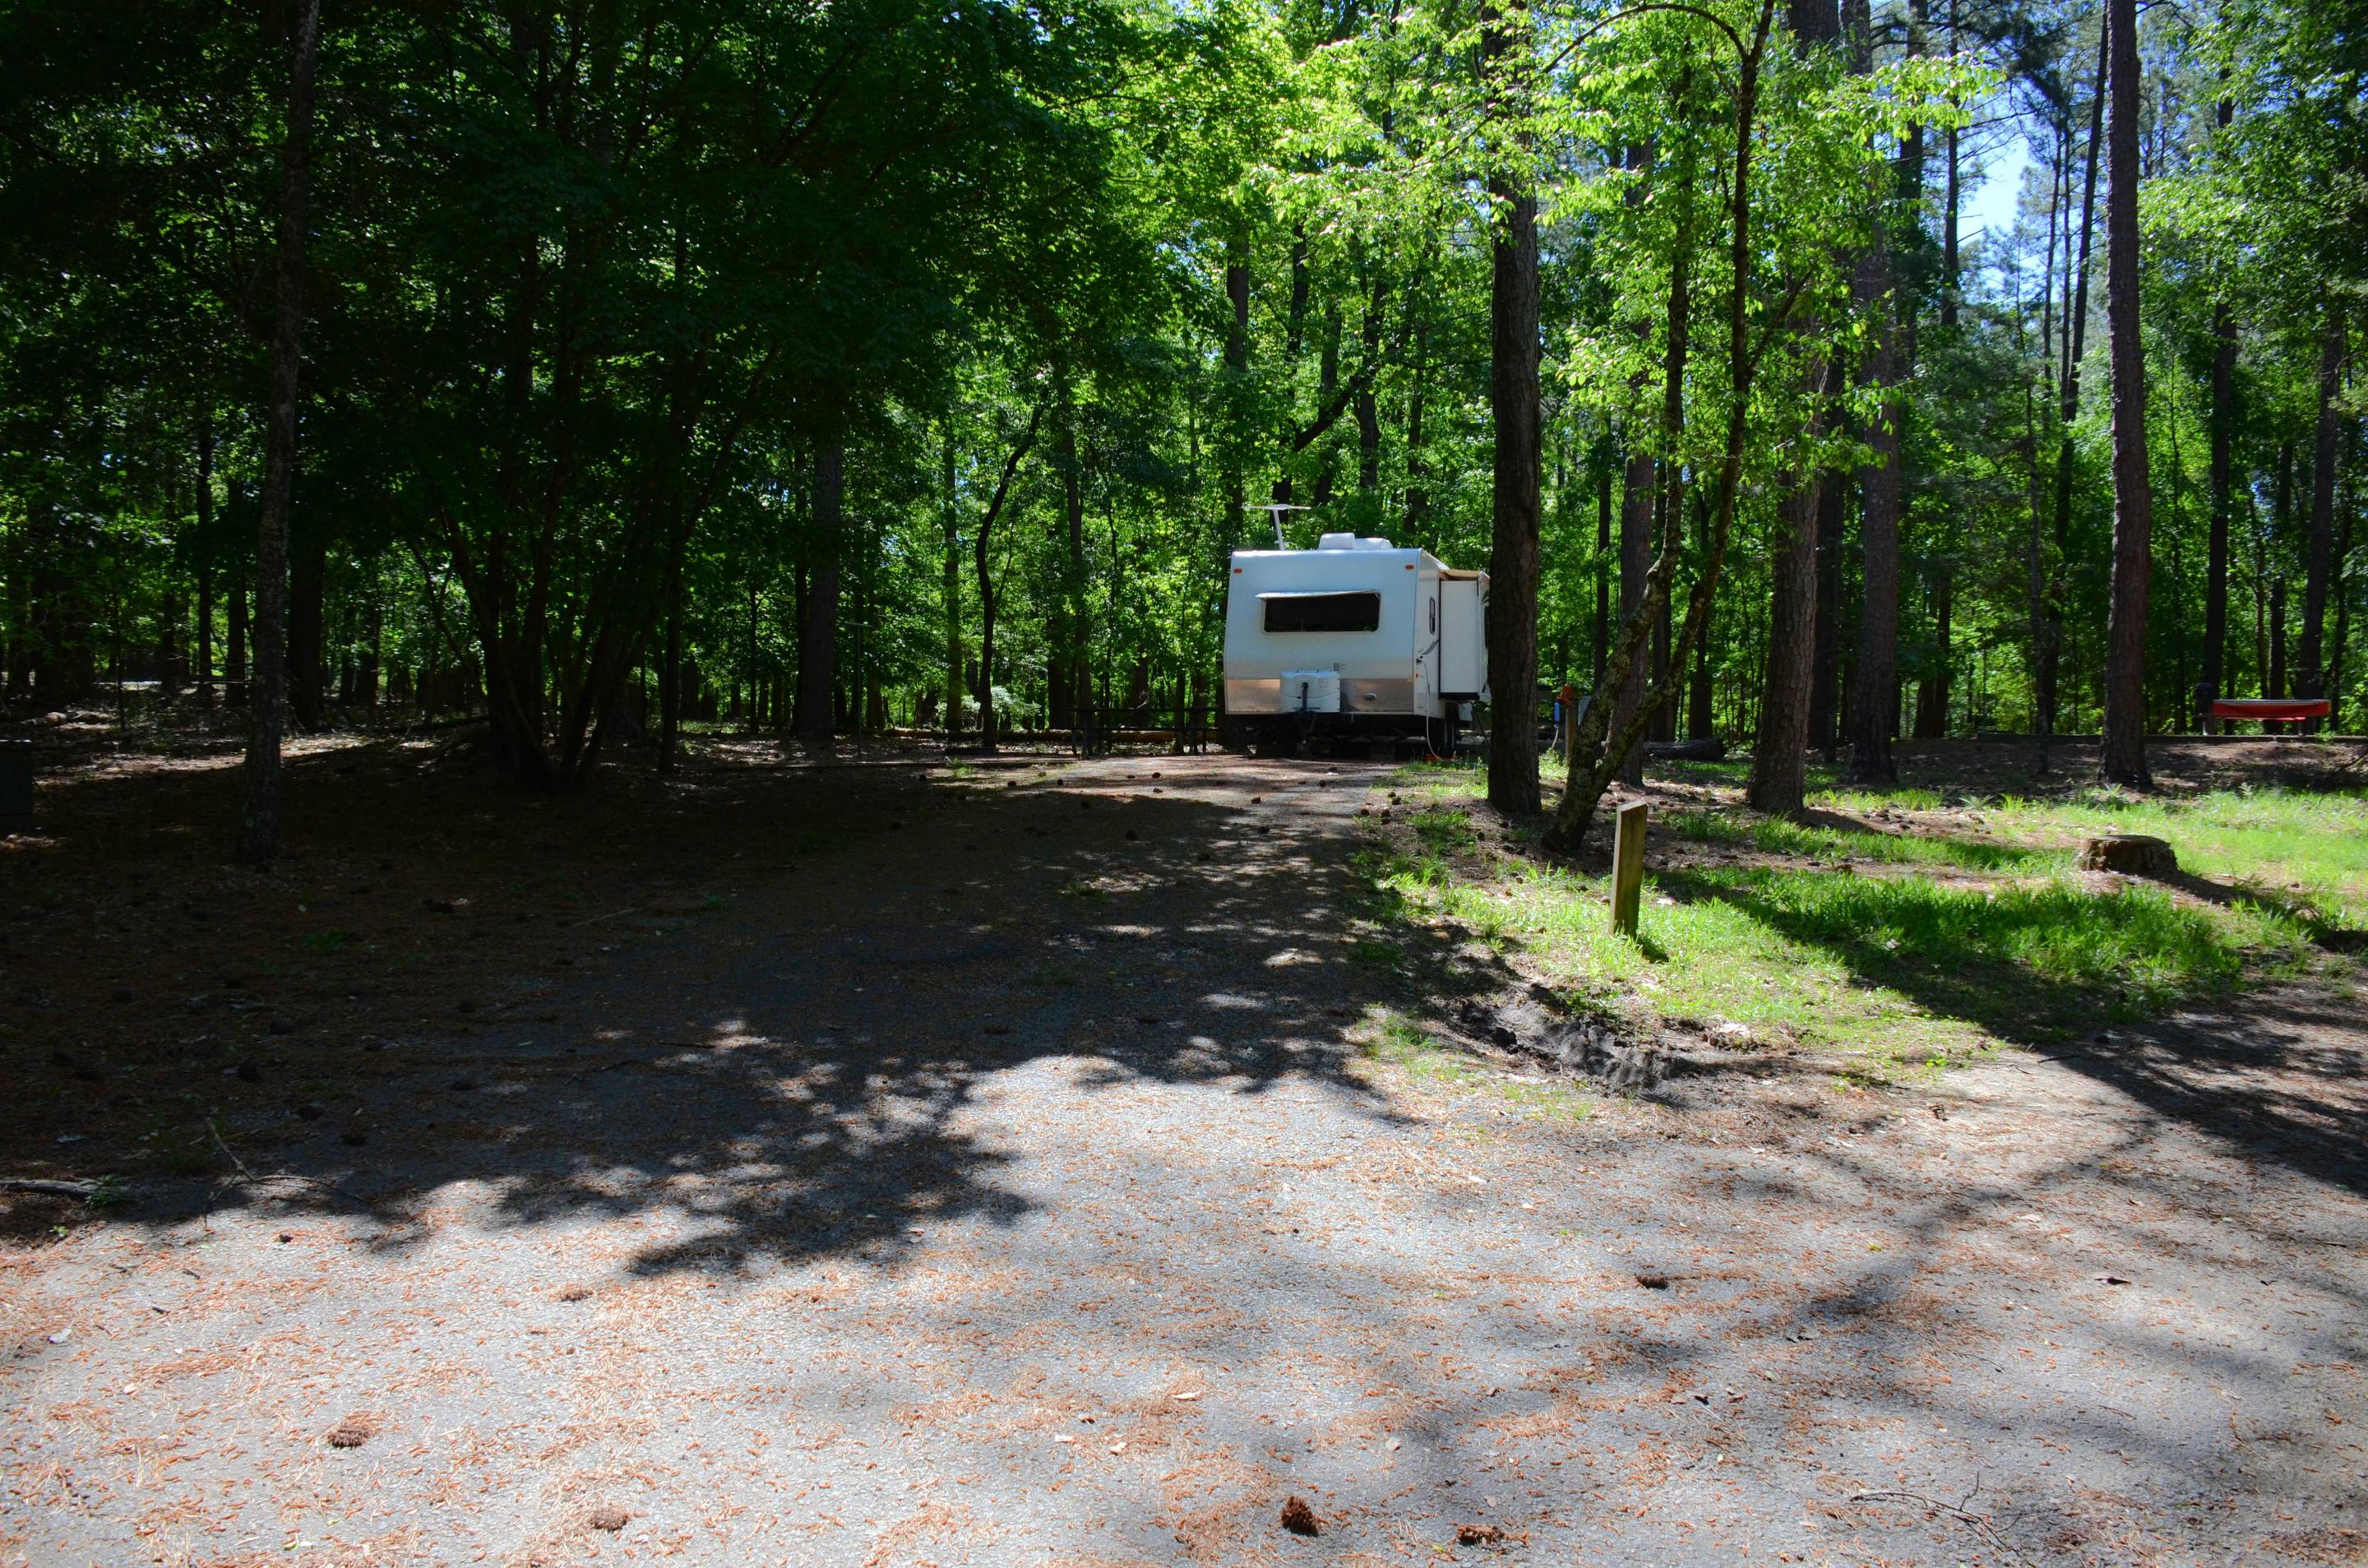 Driveway entrance angle/slope, tree branch clearance.McKinney Campground, campsite 66.